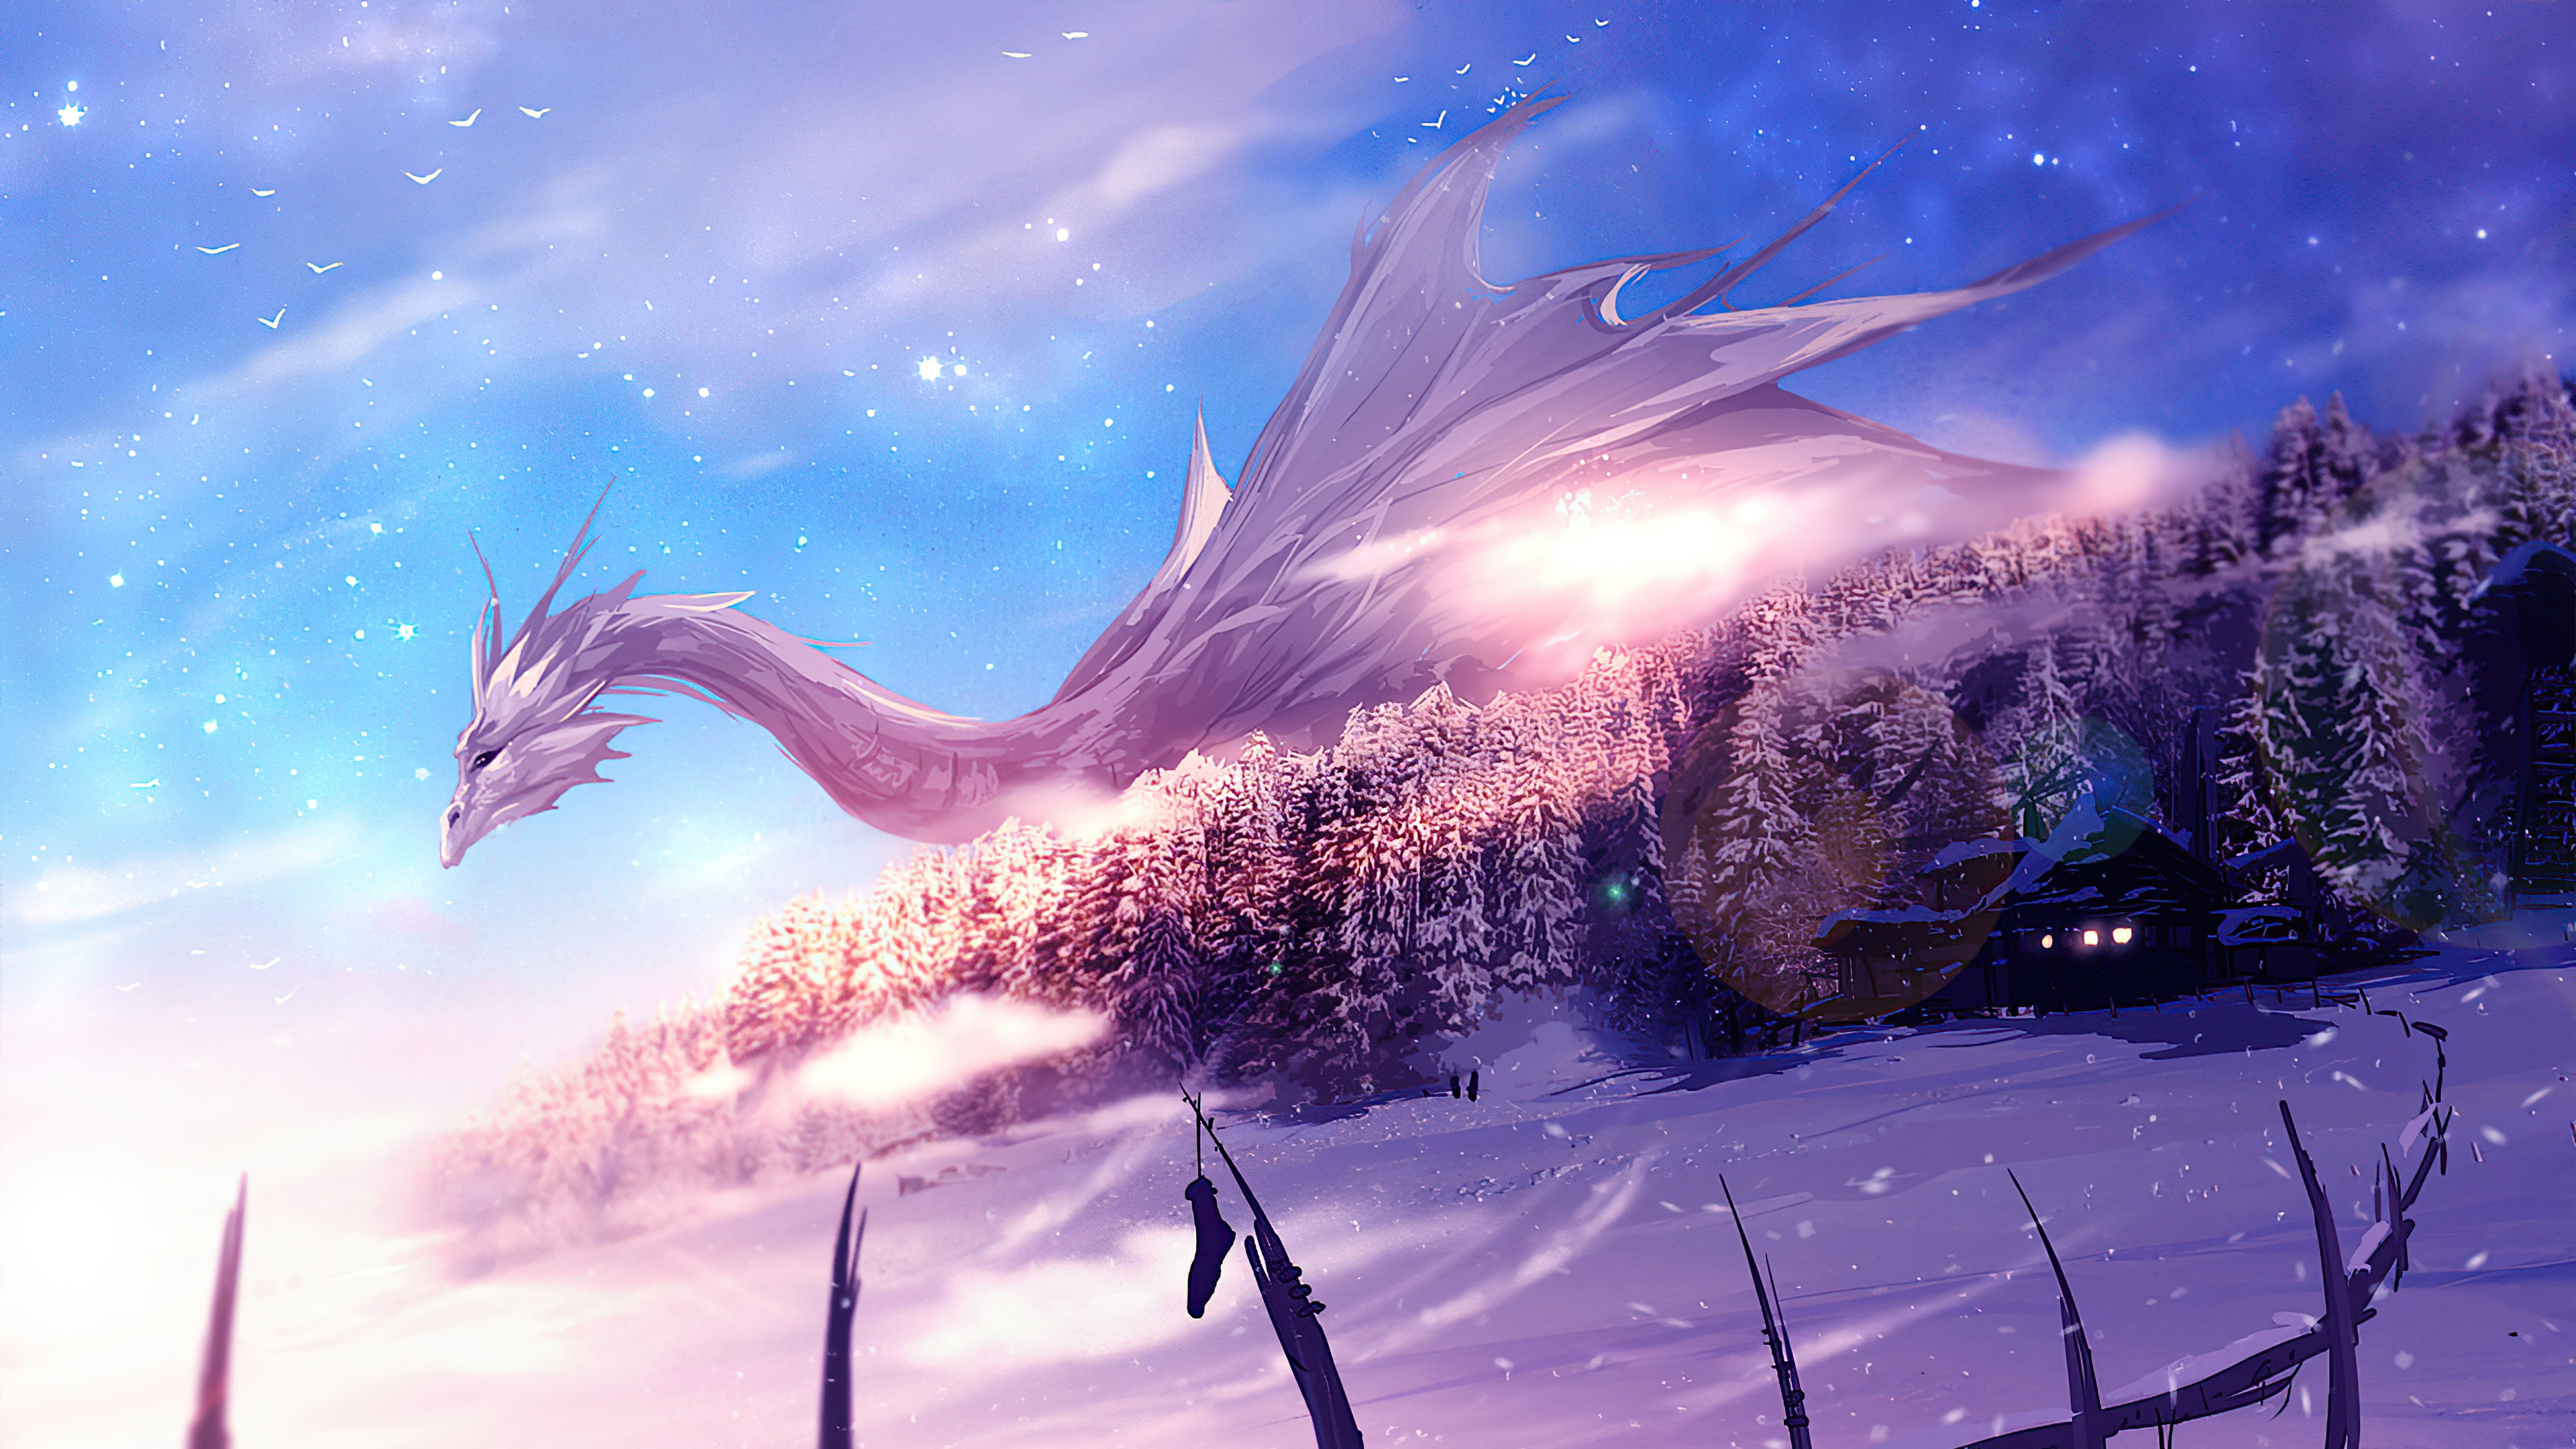 1 Fantasy Dragon Hd Wallpapers Backgrounds